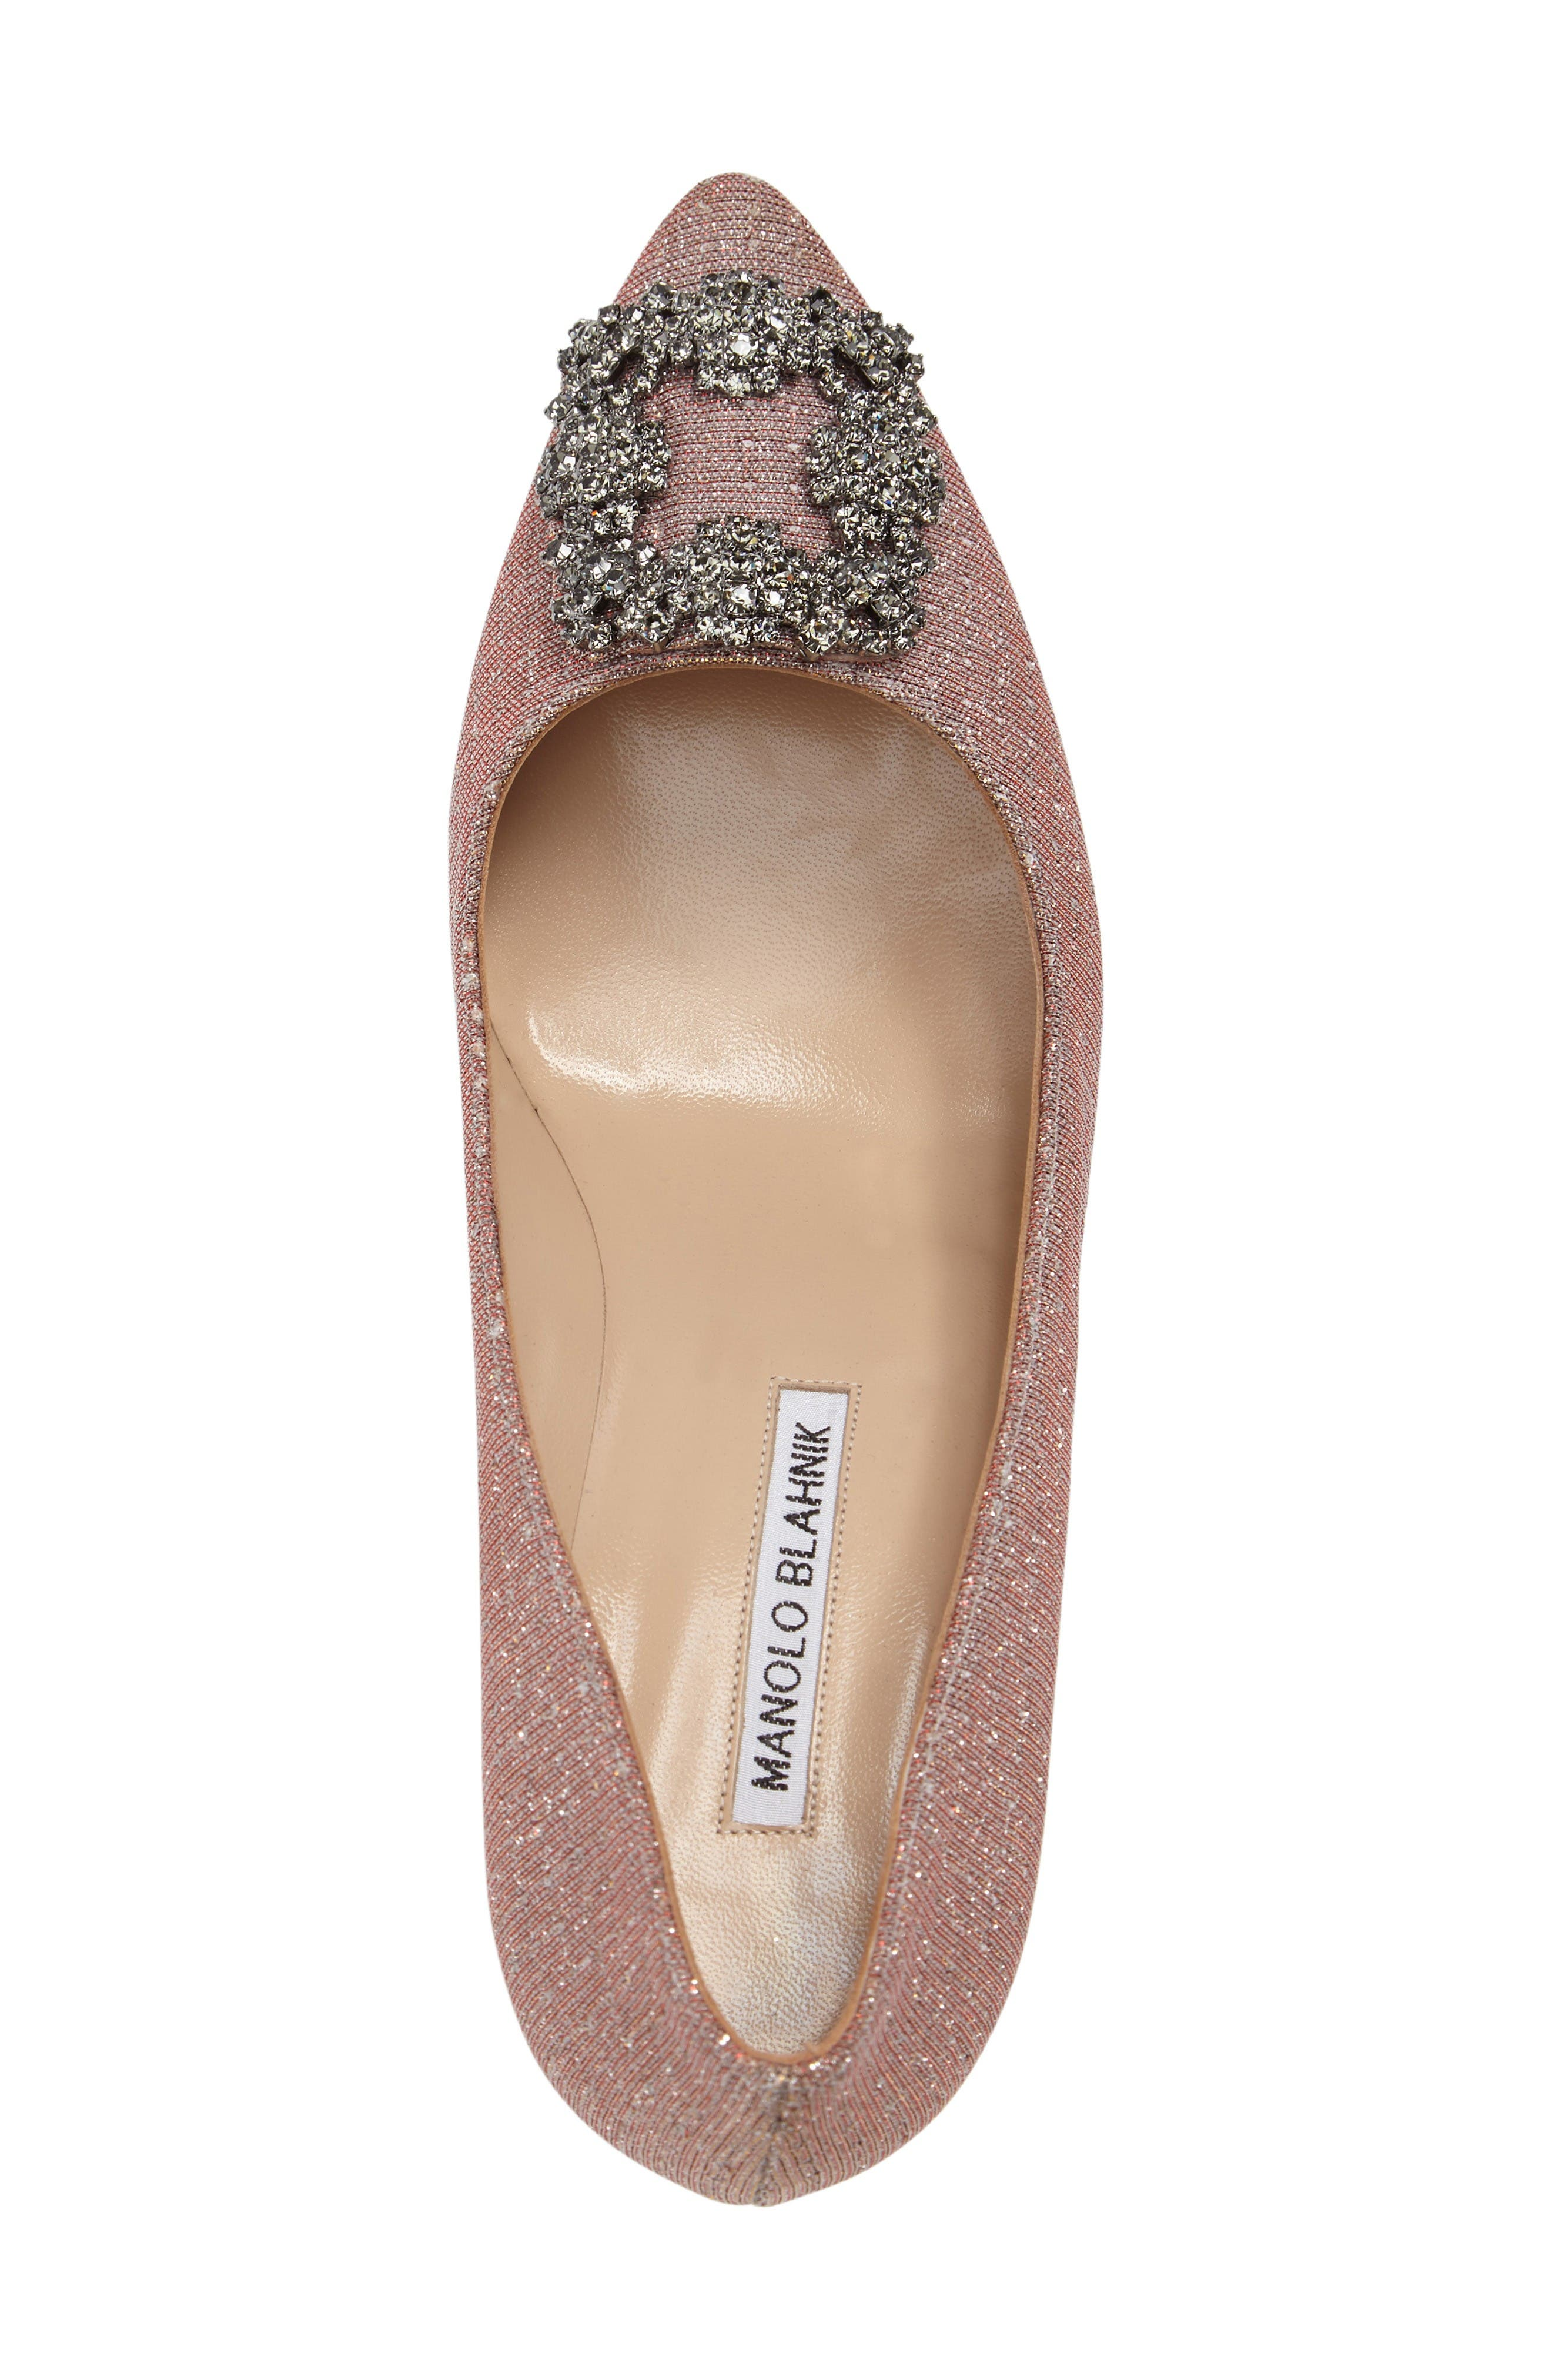 Hangisi Pump,                             Alternate thumbnail 5, color,                             Champagne Fabric